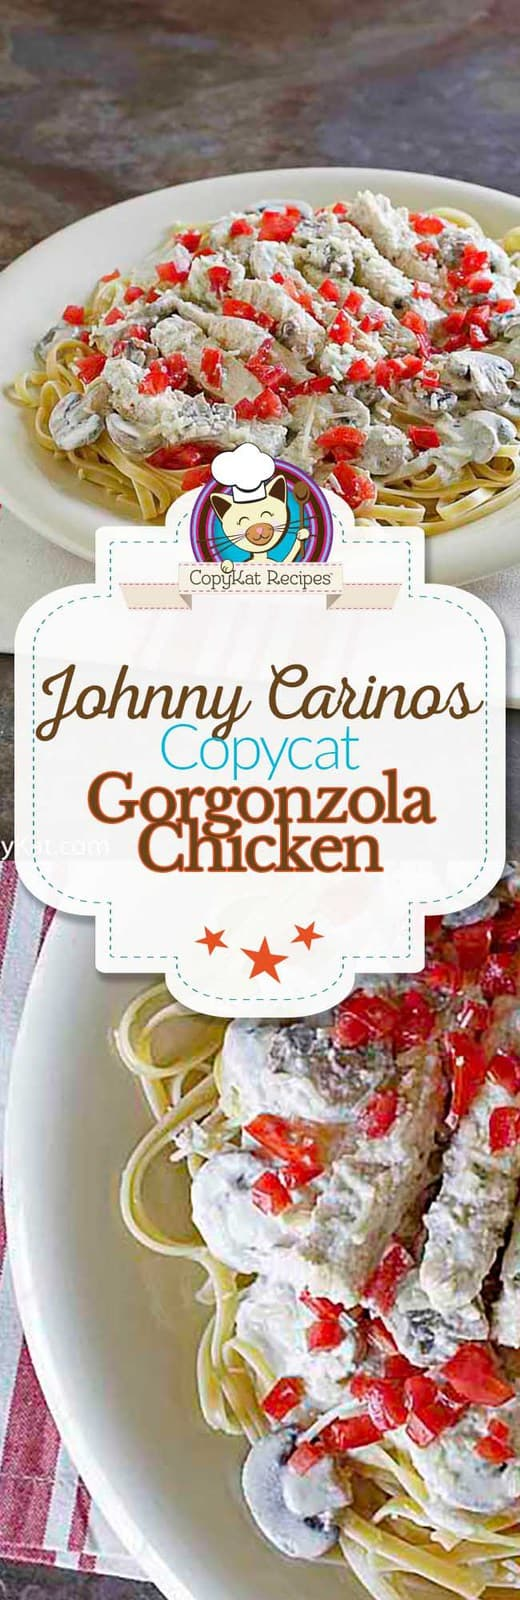 Recreate Johnny Carinos Gorgonzola Chicken at home with this copycat recipe.